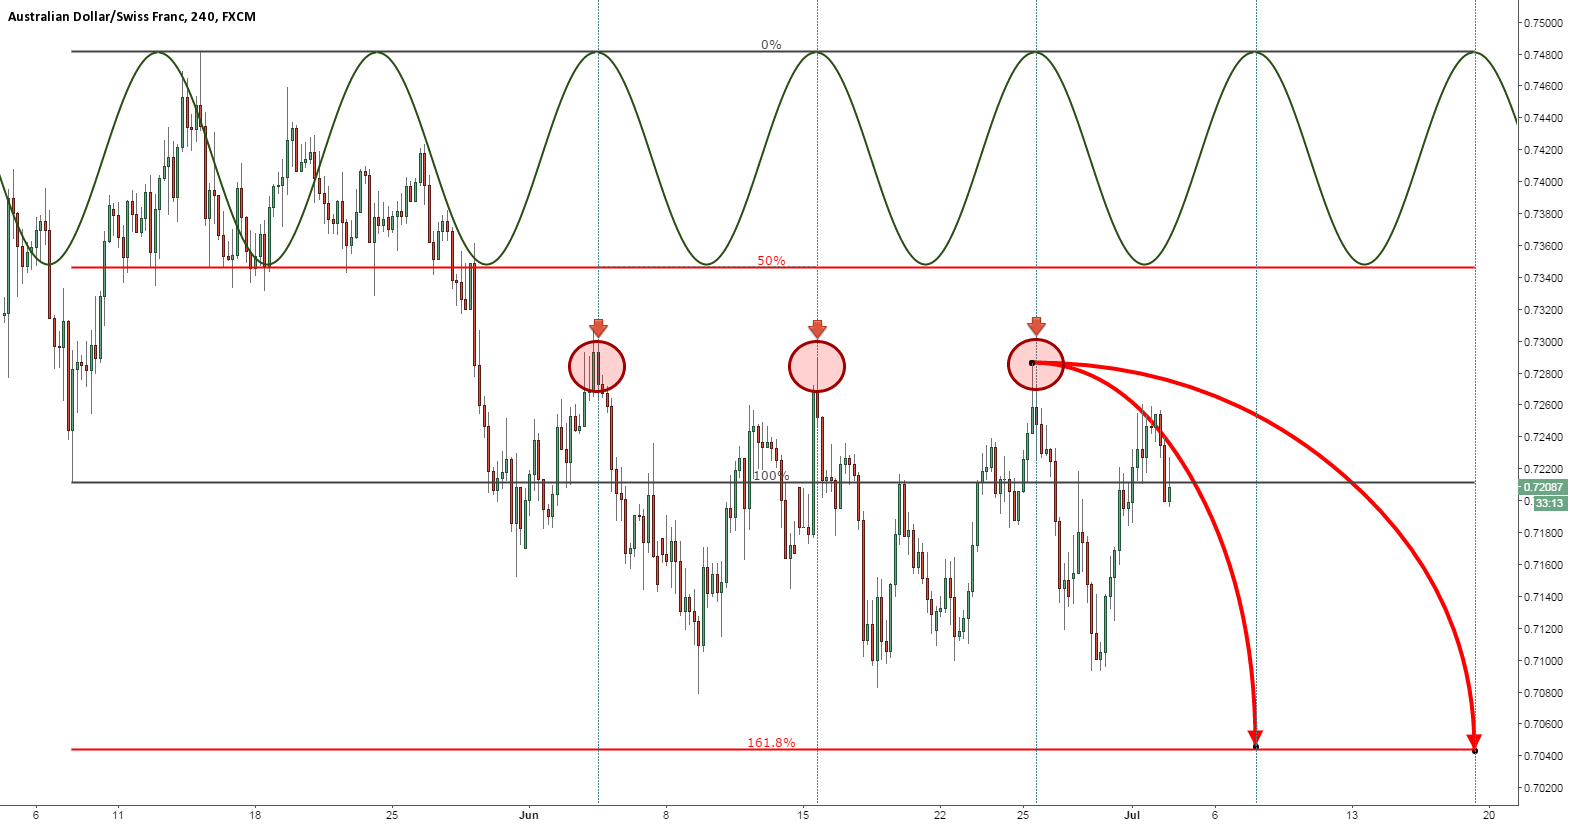 AUDCHF ABOUT TO COLLAPSE